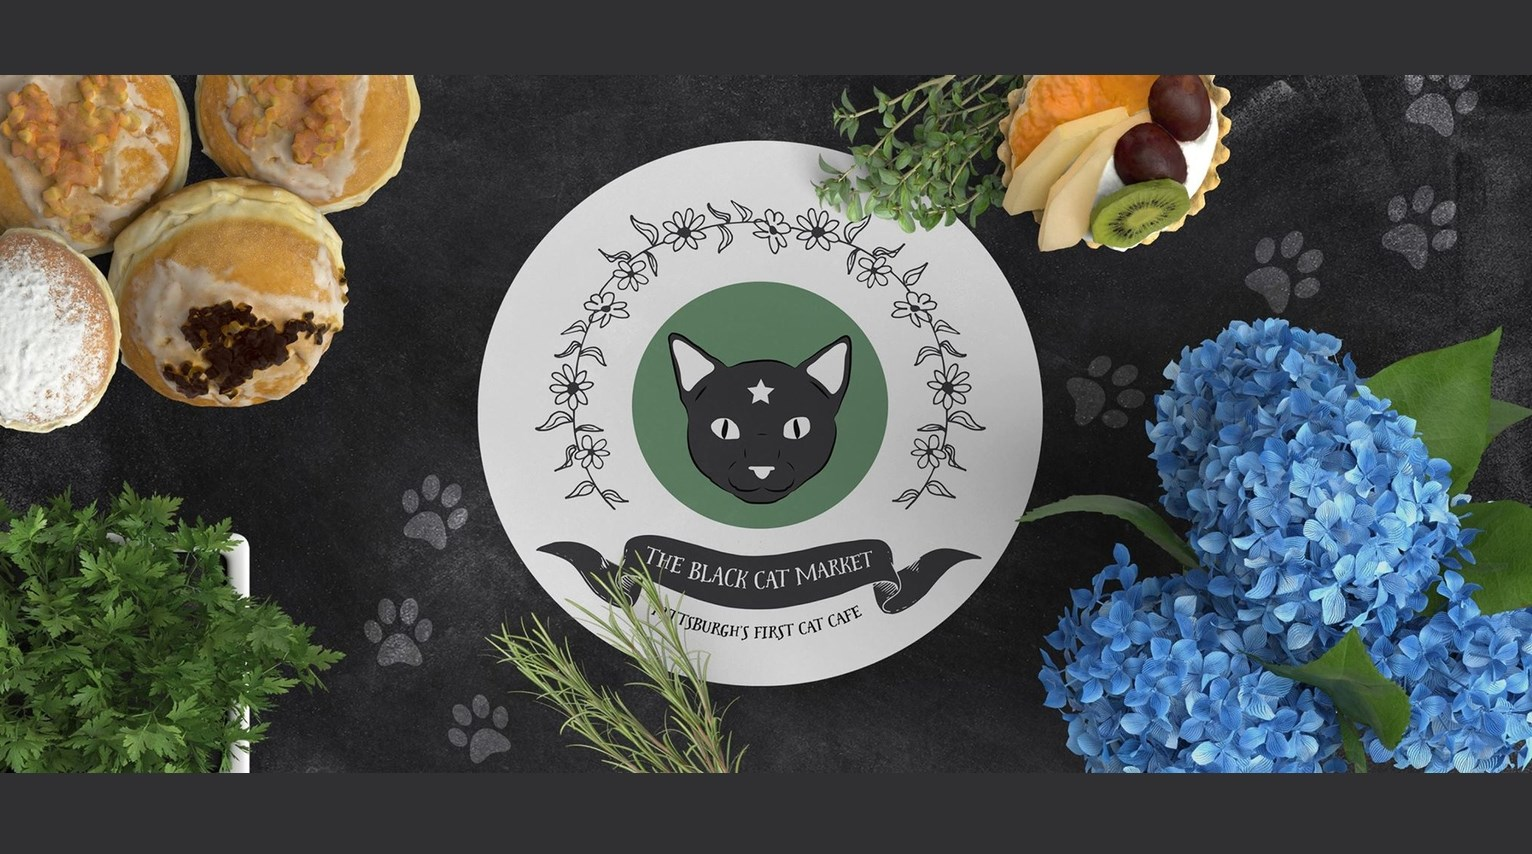 The Black Cat Market would be Pittsburgh's first cat cafe.